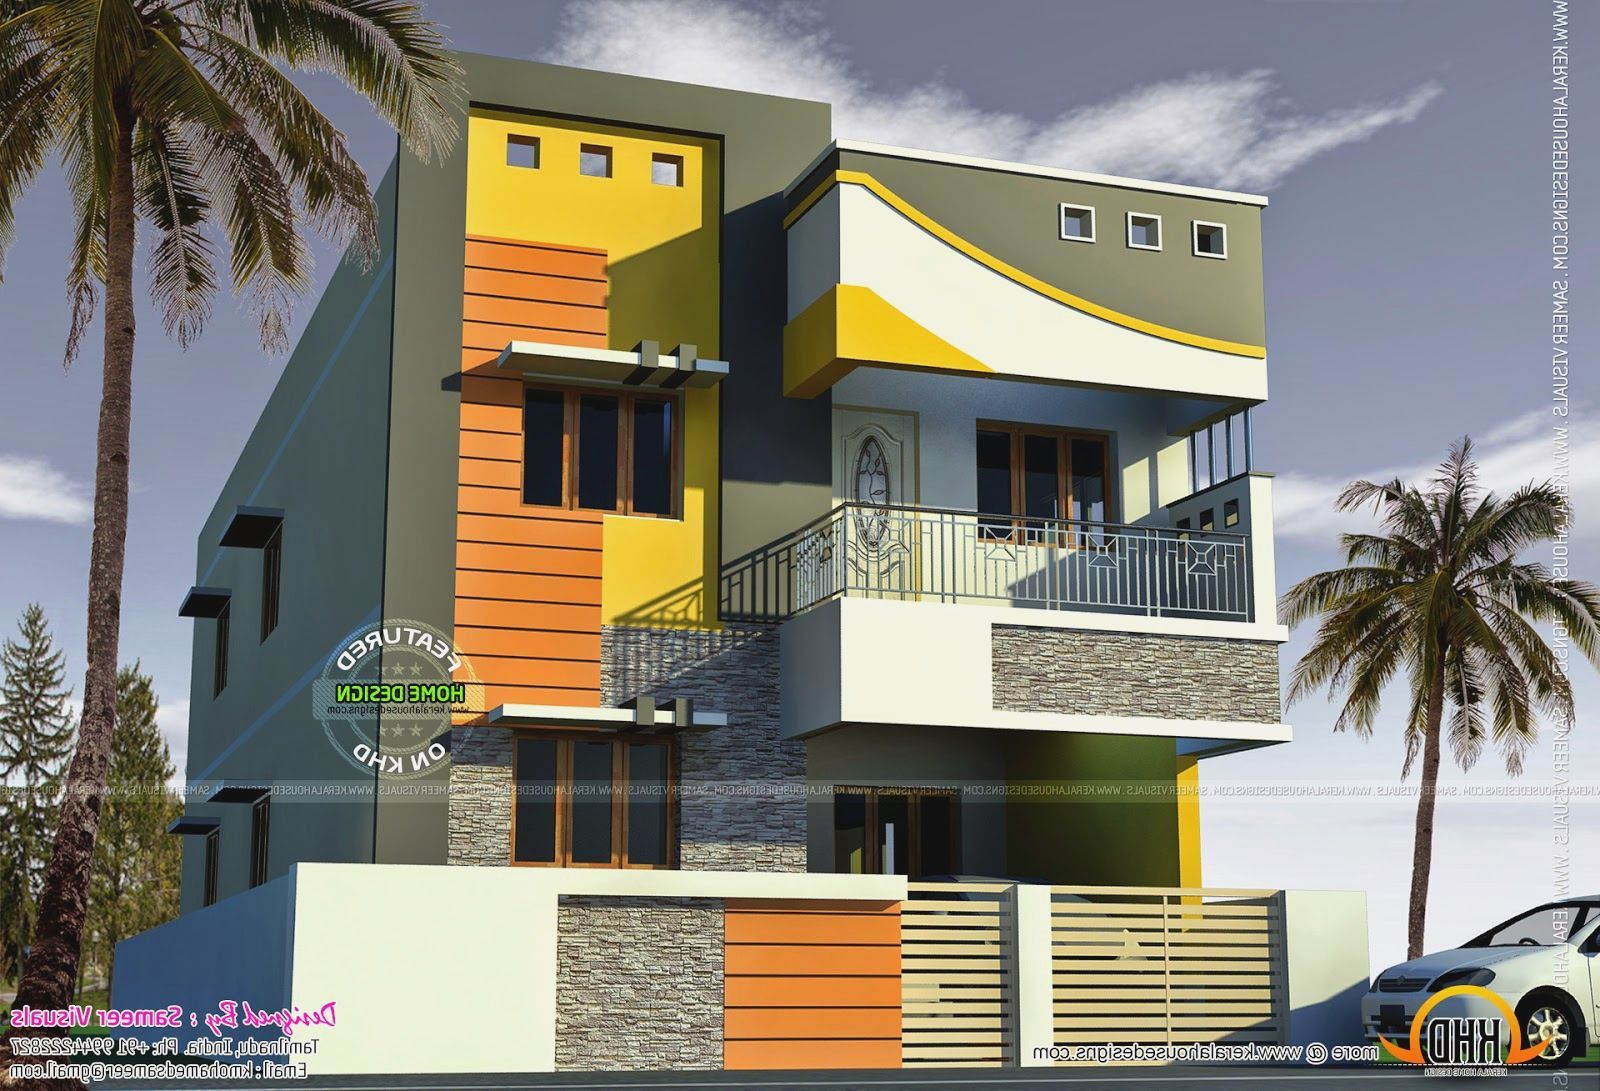 Tamilnadu house models more picture tamilnadu house models for Home designs in tamilnadu